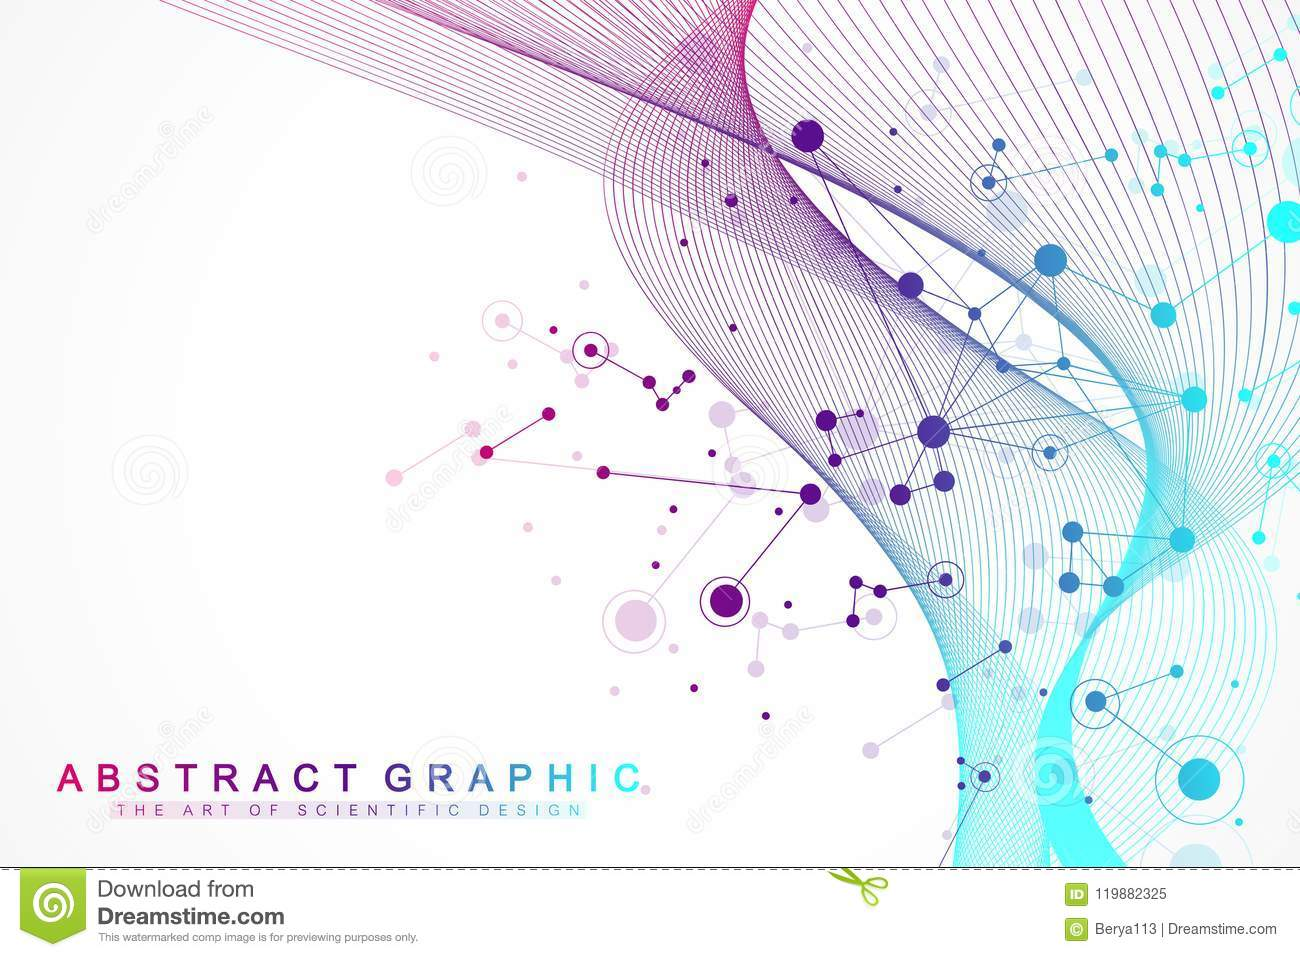 Big data visualization. Artificial Intelligence and Machine Learning Concept. Graphic abstract background communication